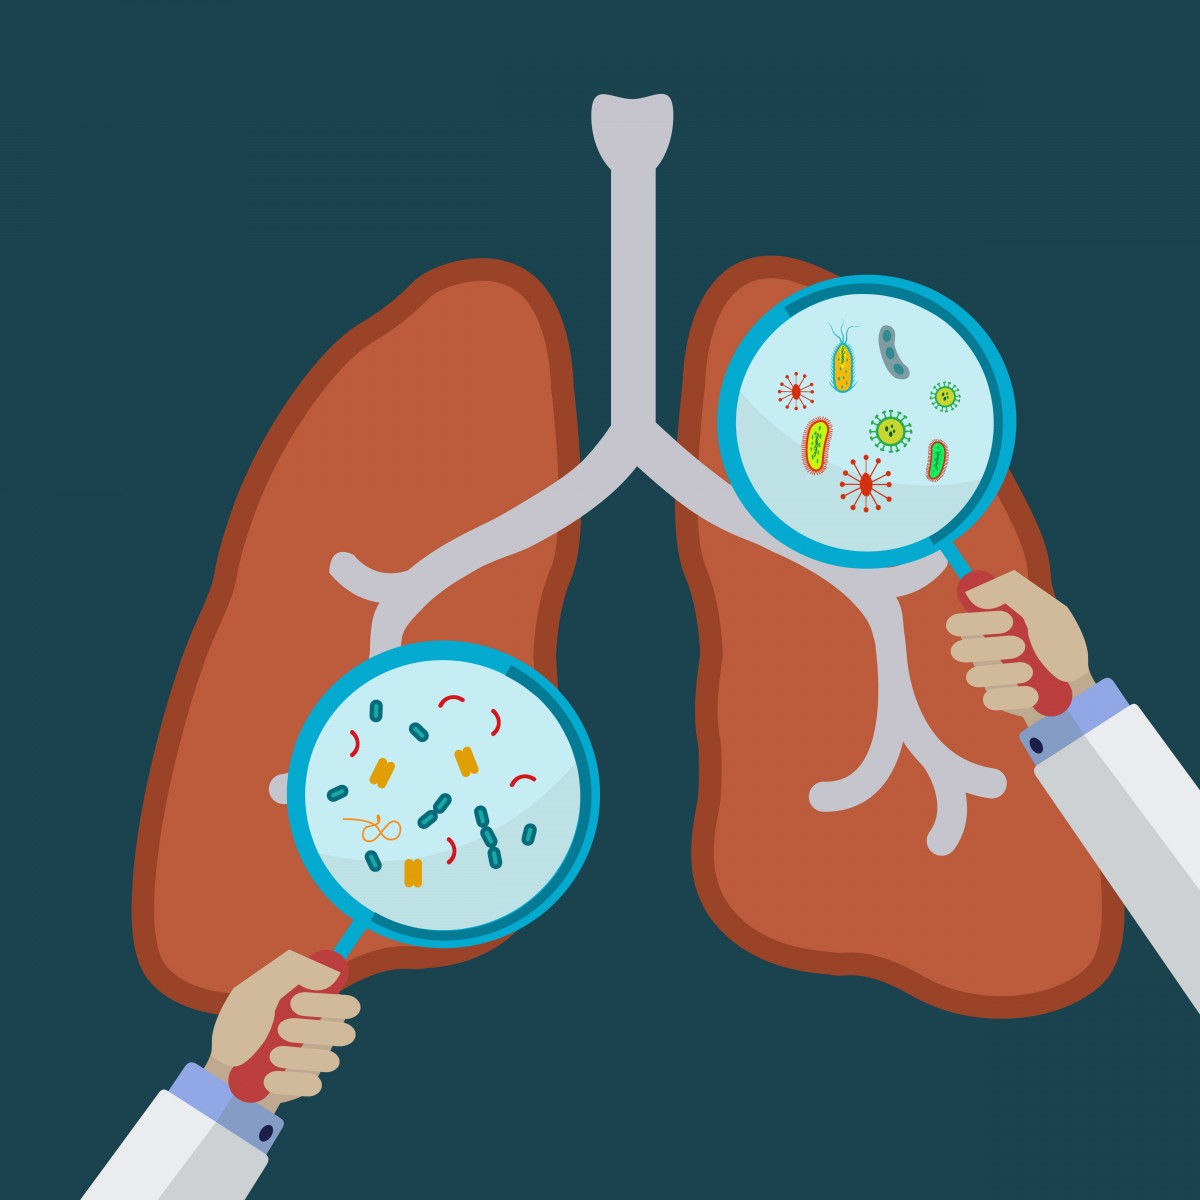 bacteria and bird-related lung disease